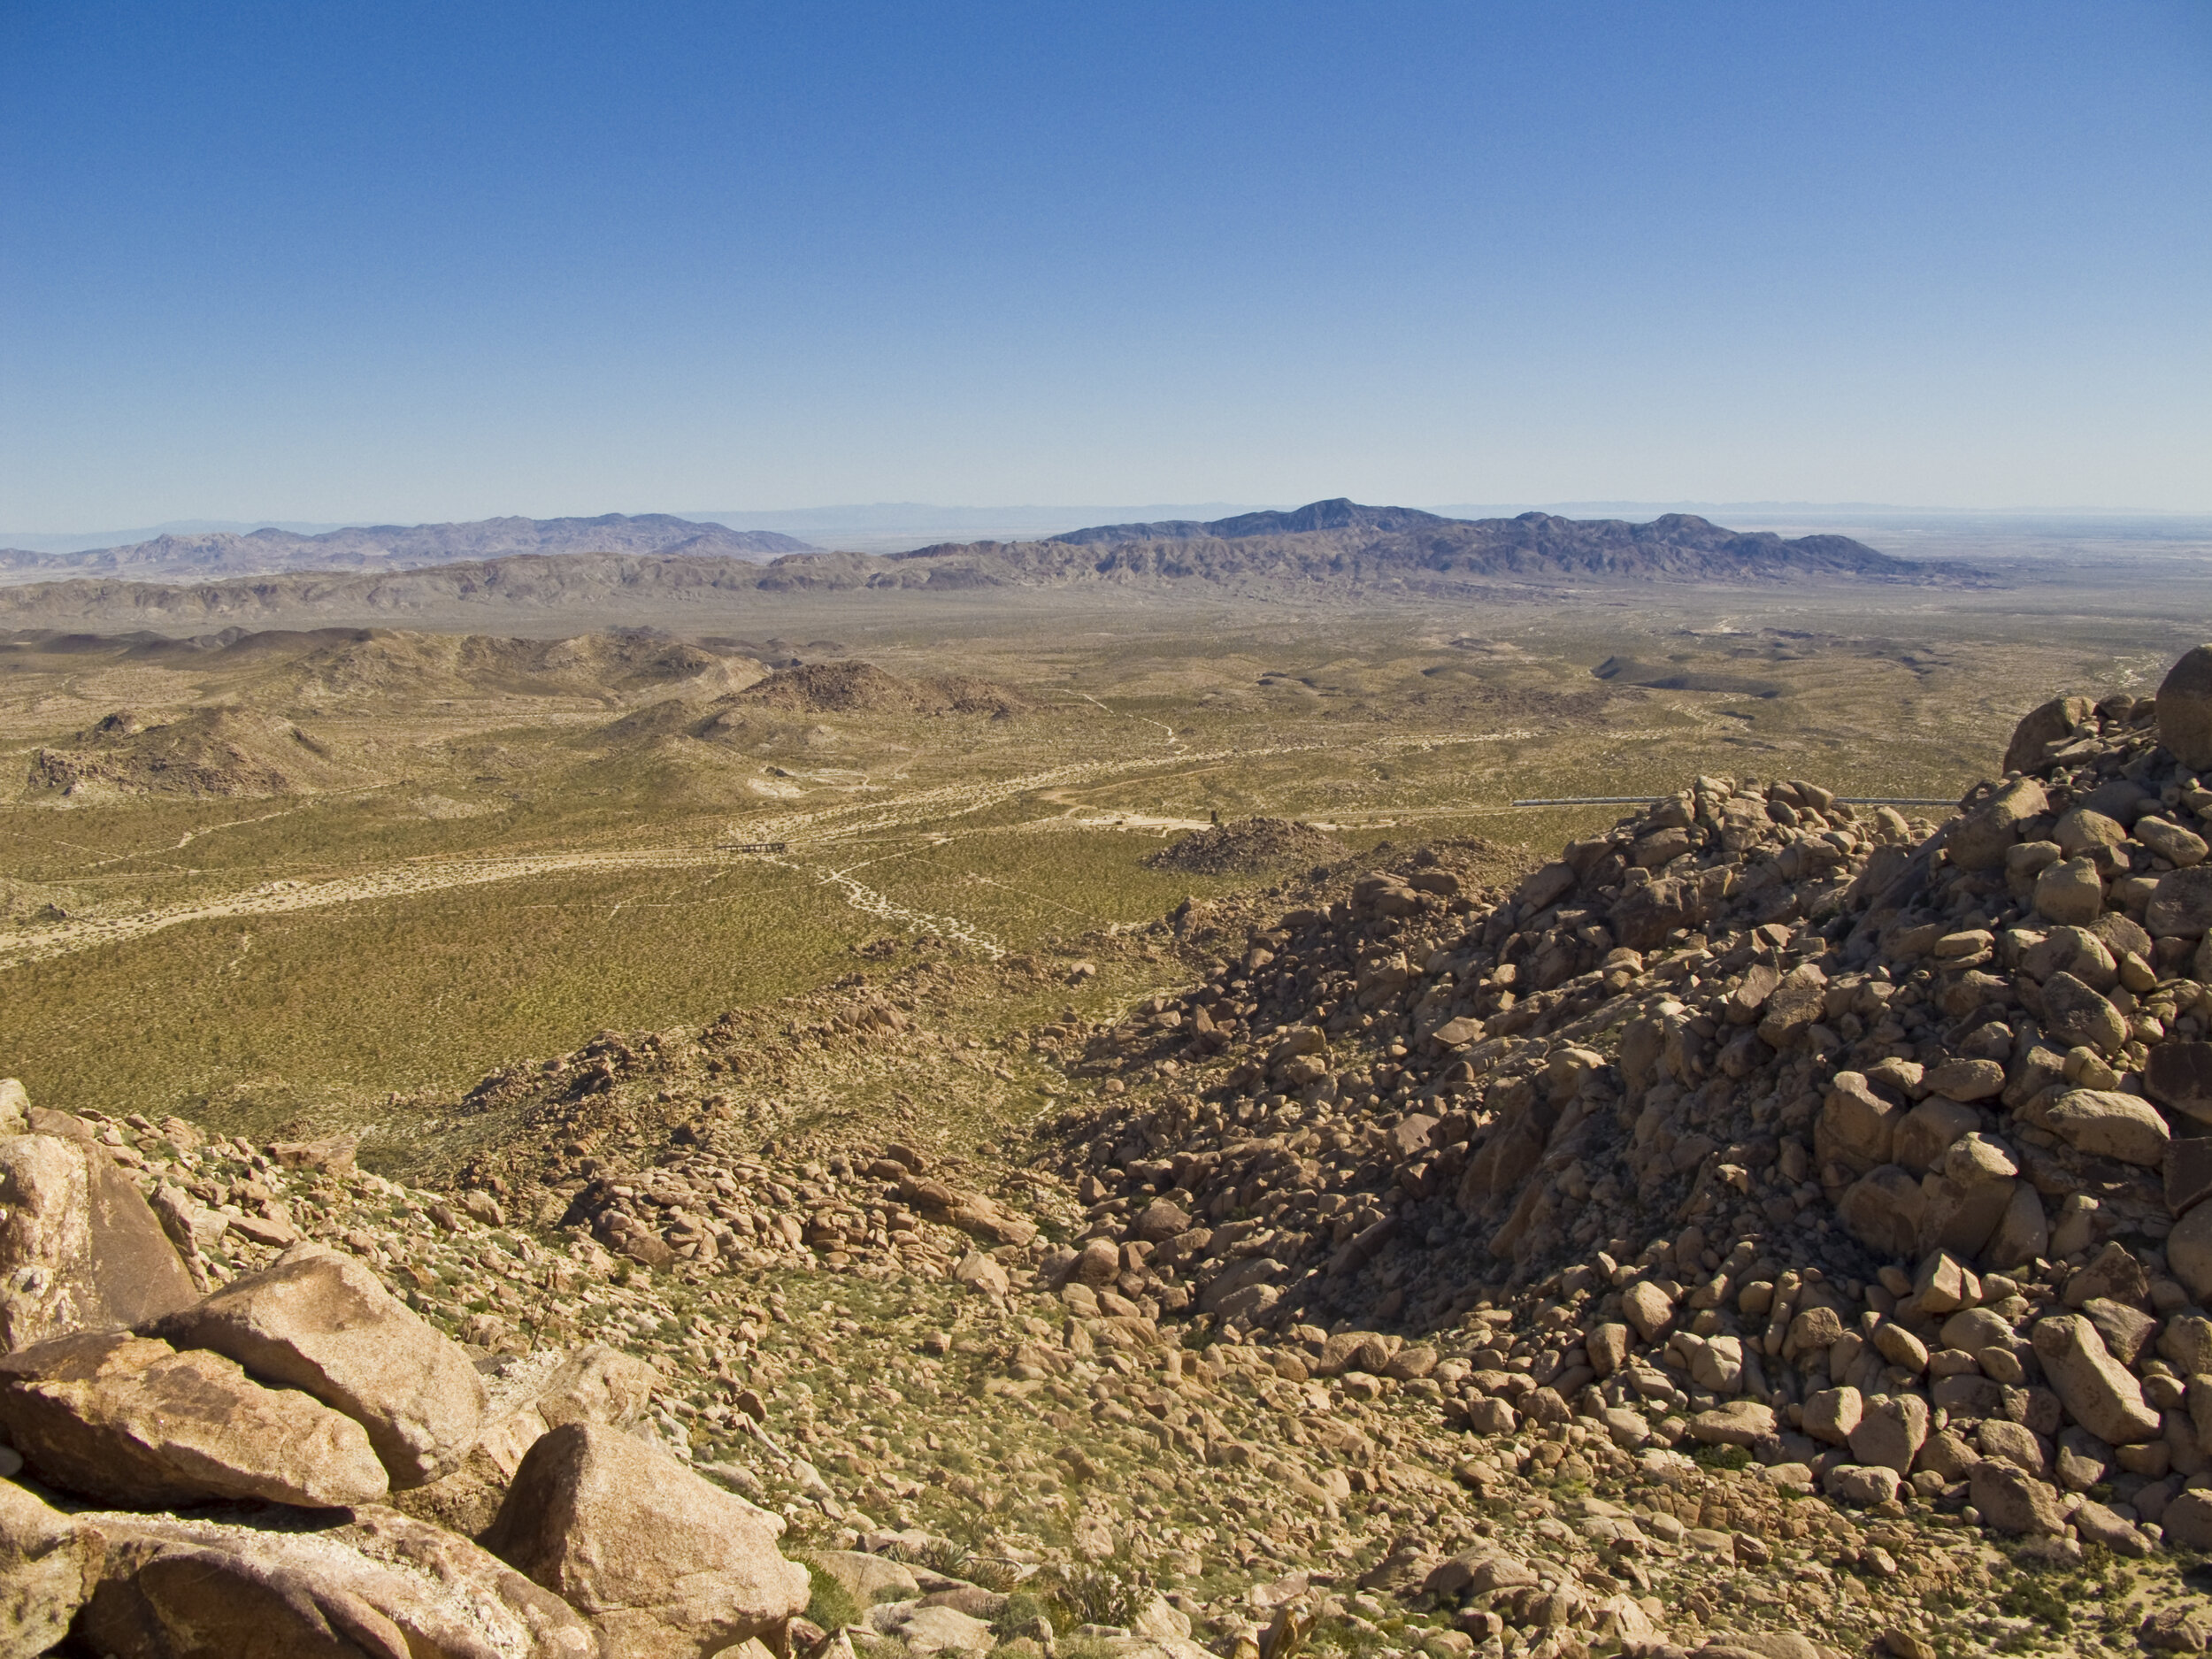 View of Dos Cabezas with Carrizo Mountain in the Distance From Piedras Grandes